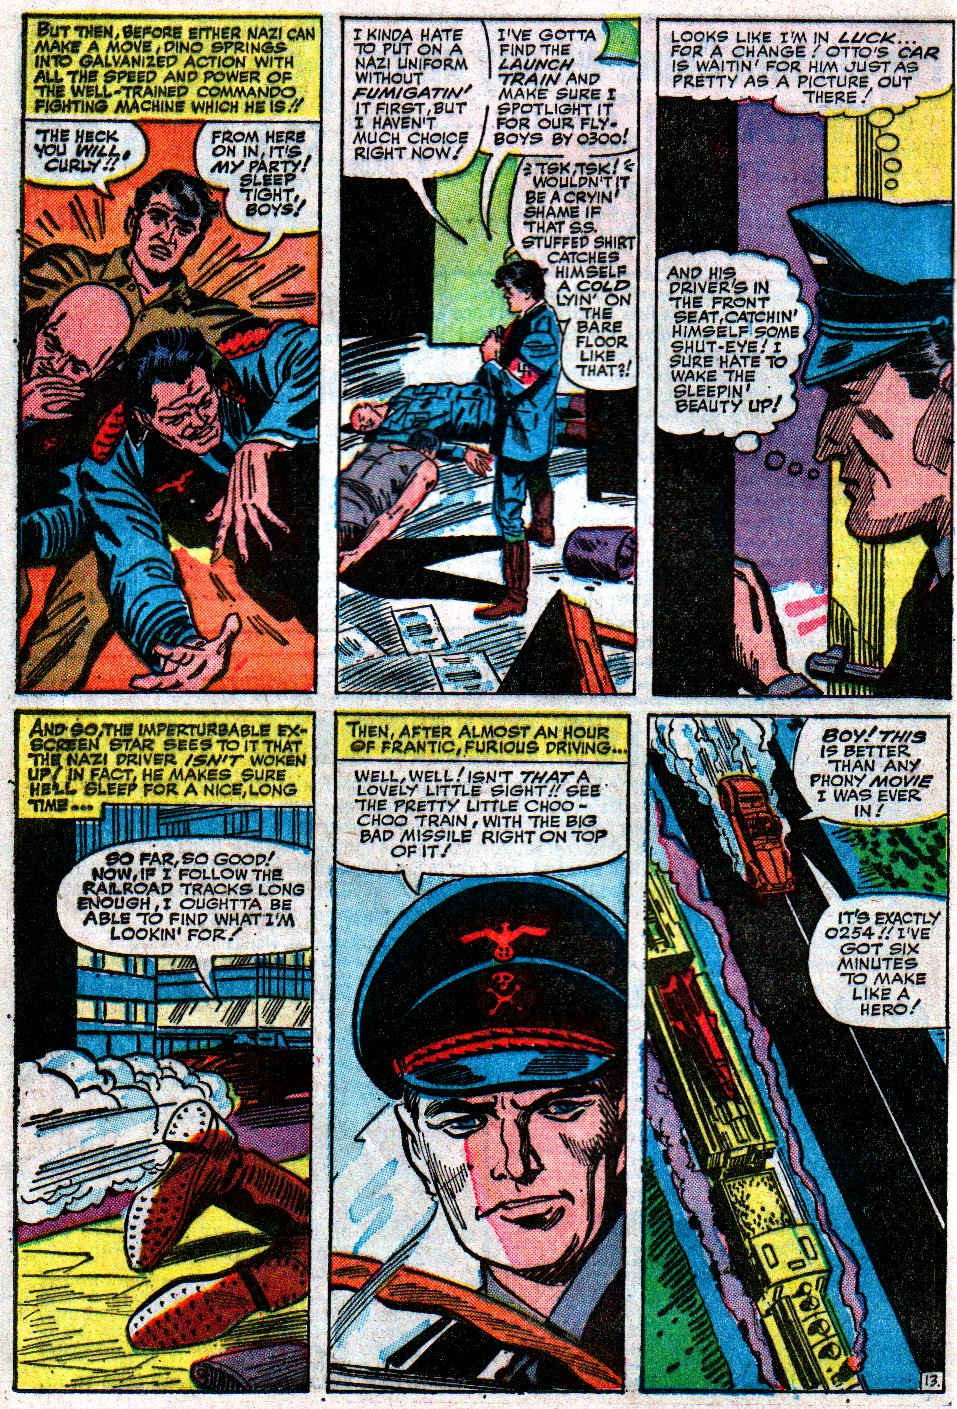 Read online Sgt. Fury comic -  Issue #12 - 20